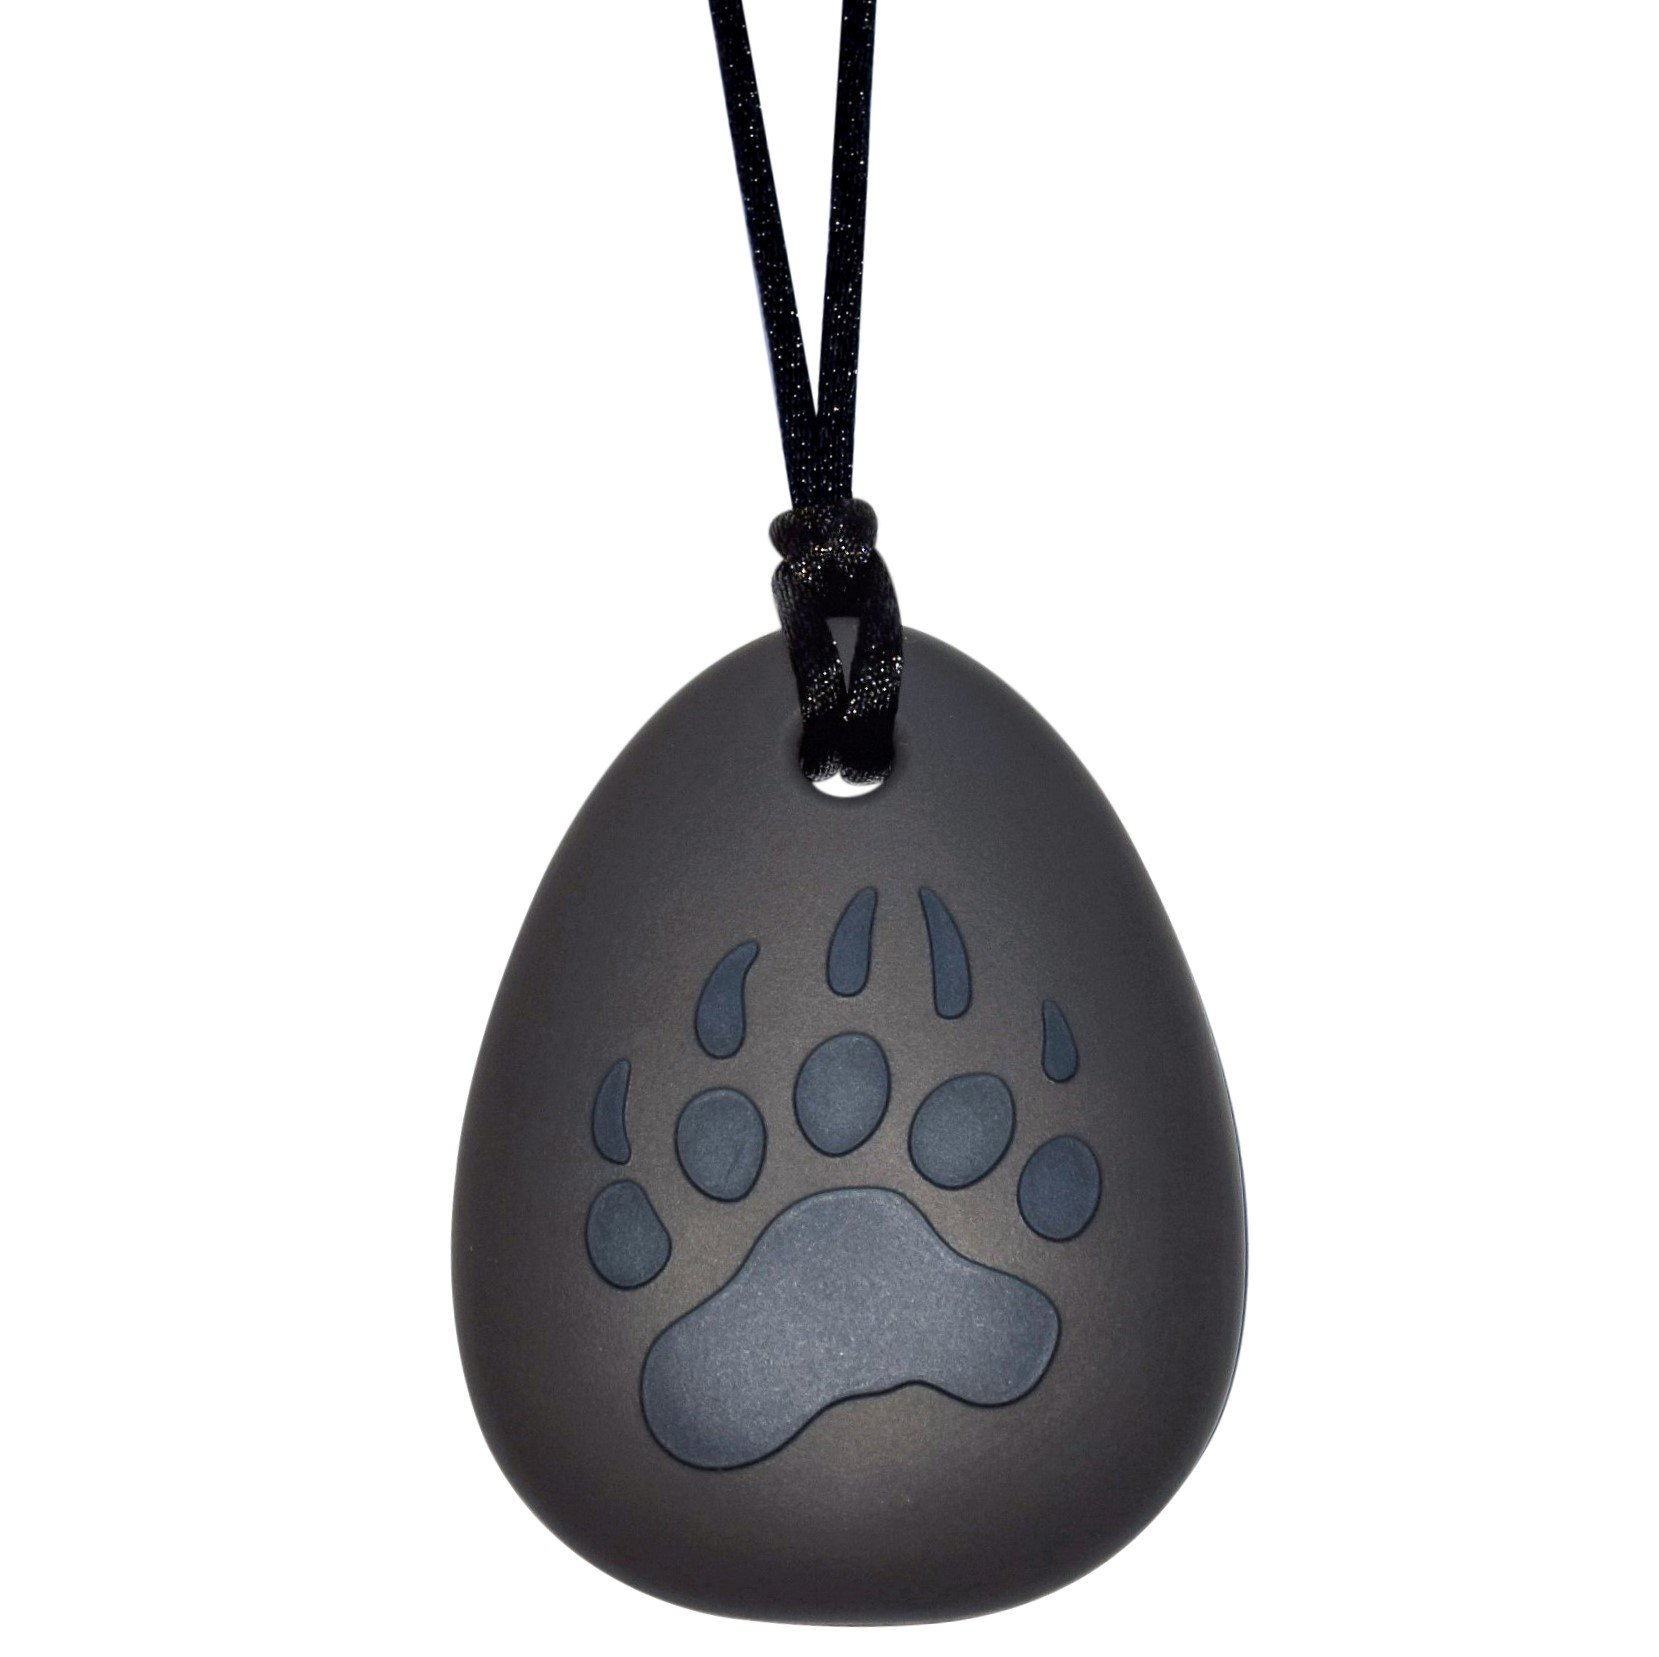 Sensory Oral Motor Aide Chewelry - Bear Paw Chew Necklace for Sensory-Focused Kids (Dark Blue)